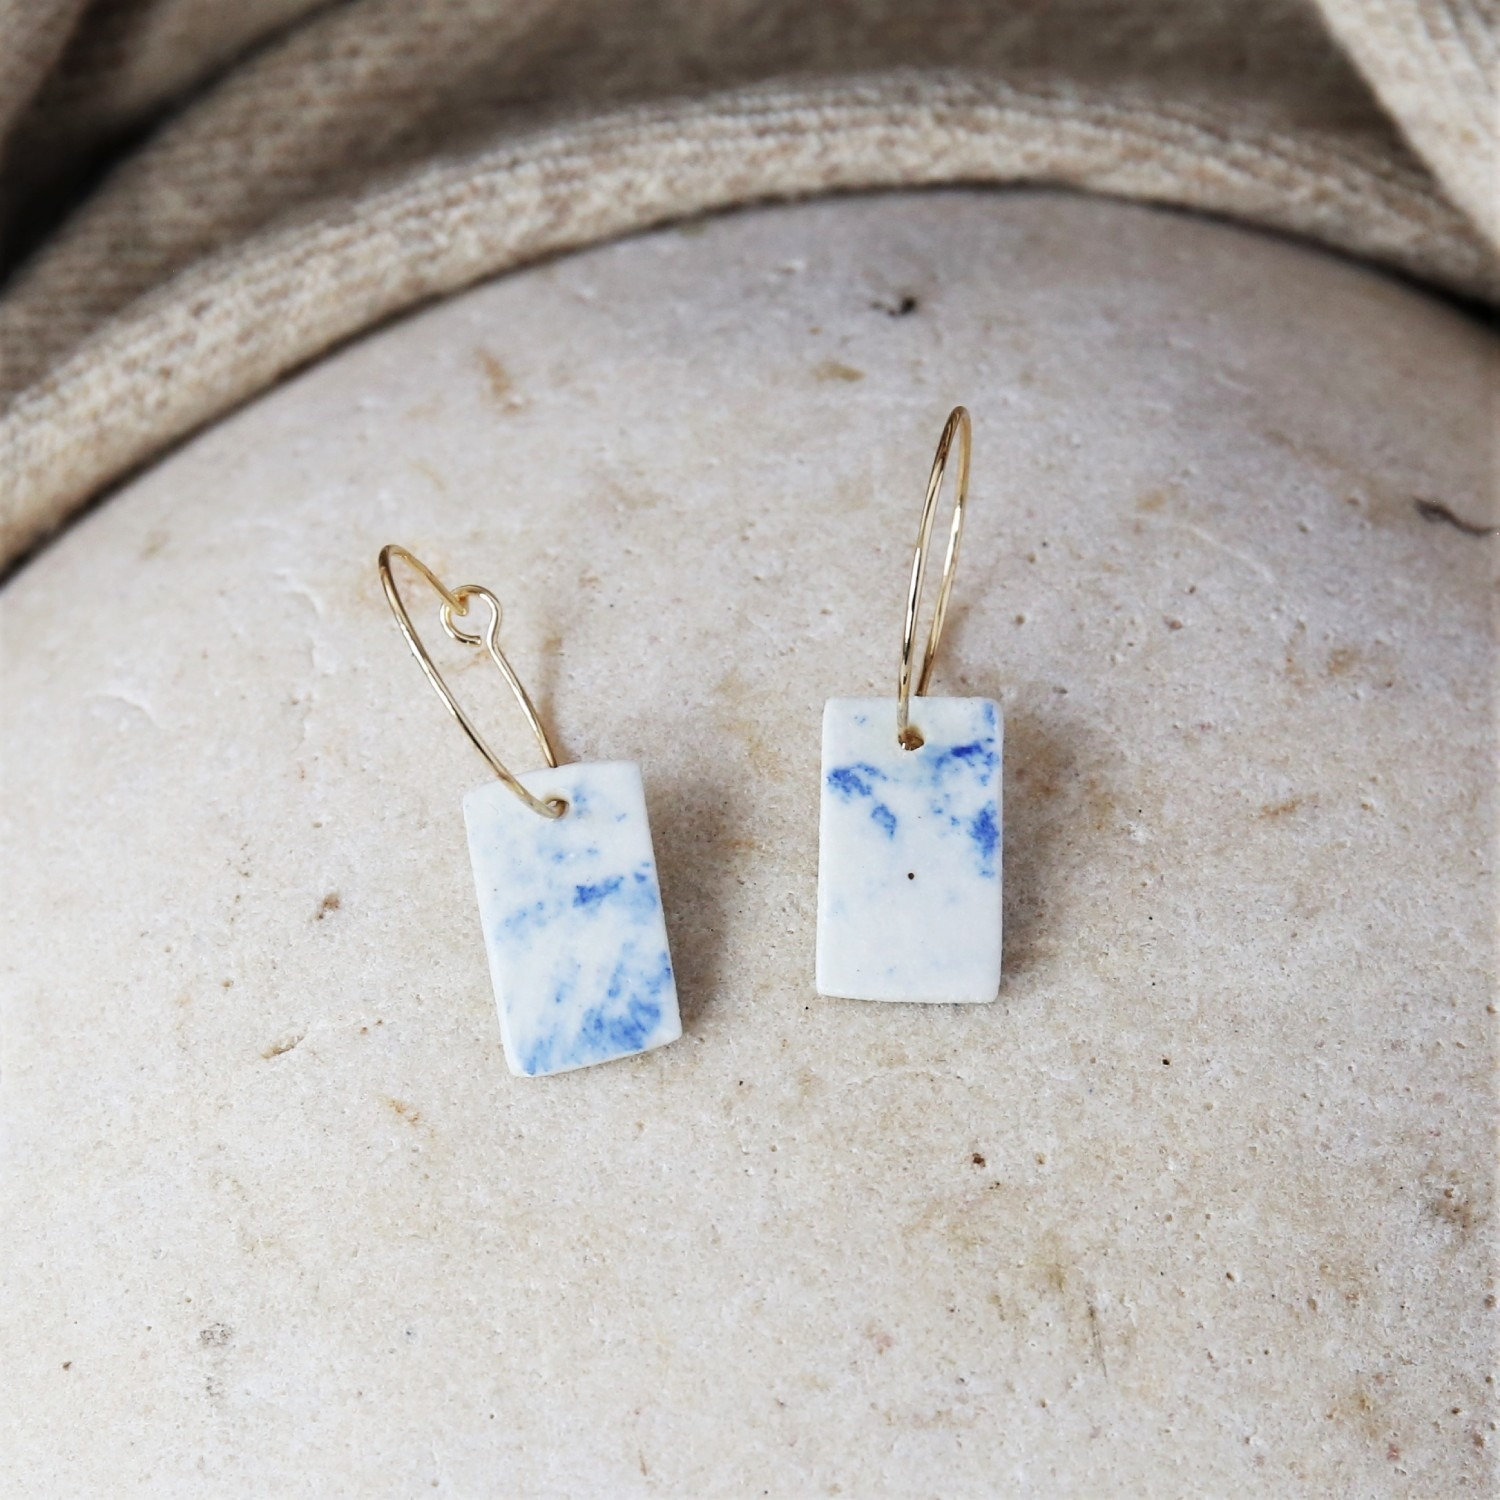 Glazed porcelain earrings on gold filled hoops by Clay Shed Studio